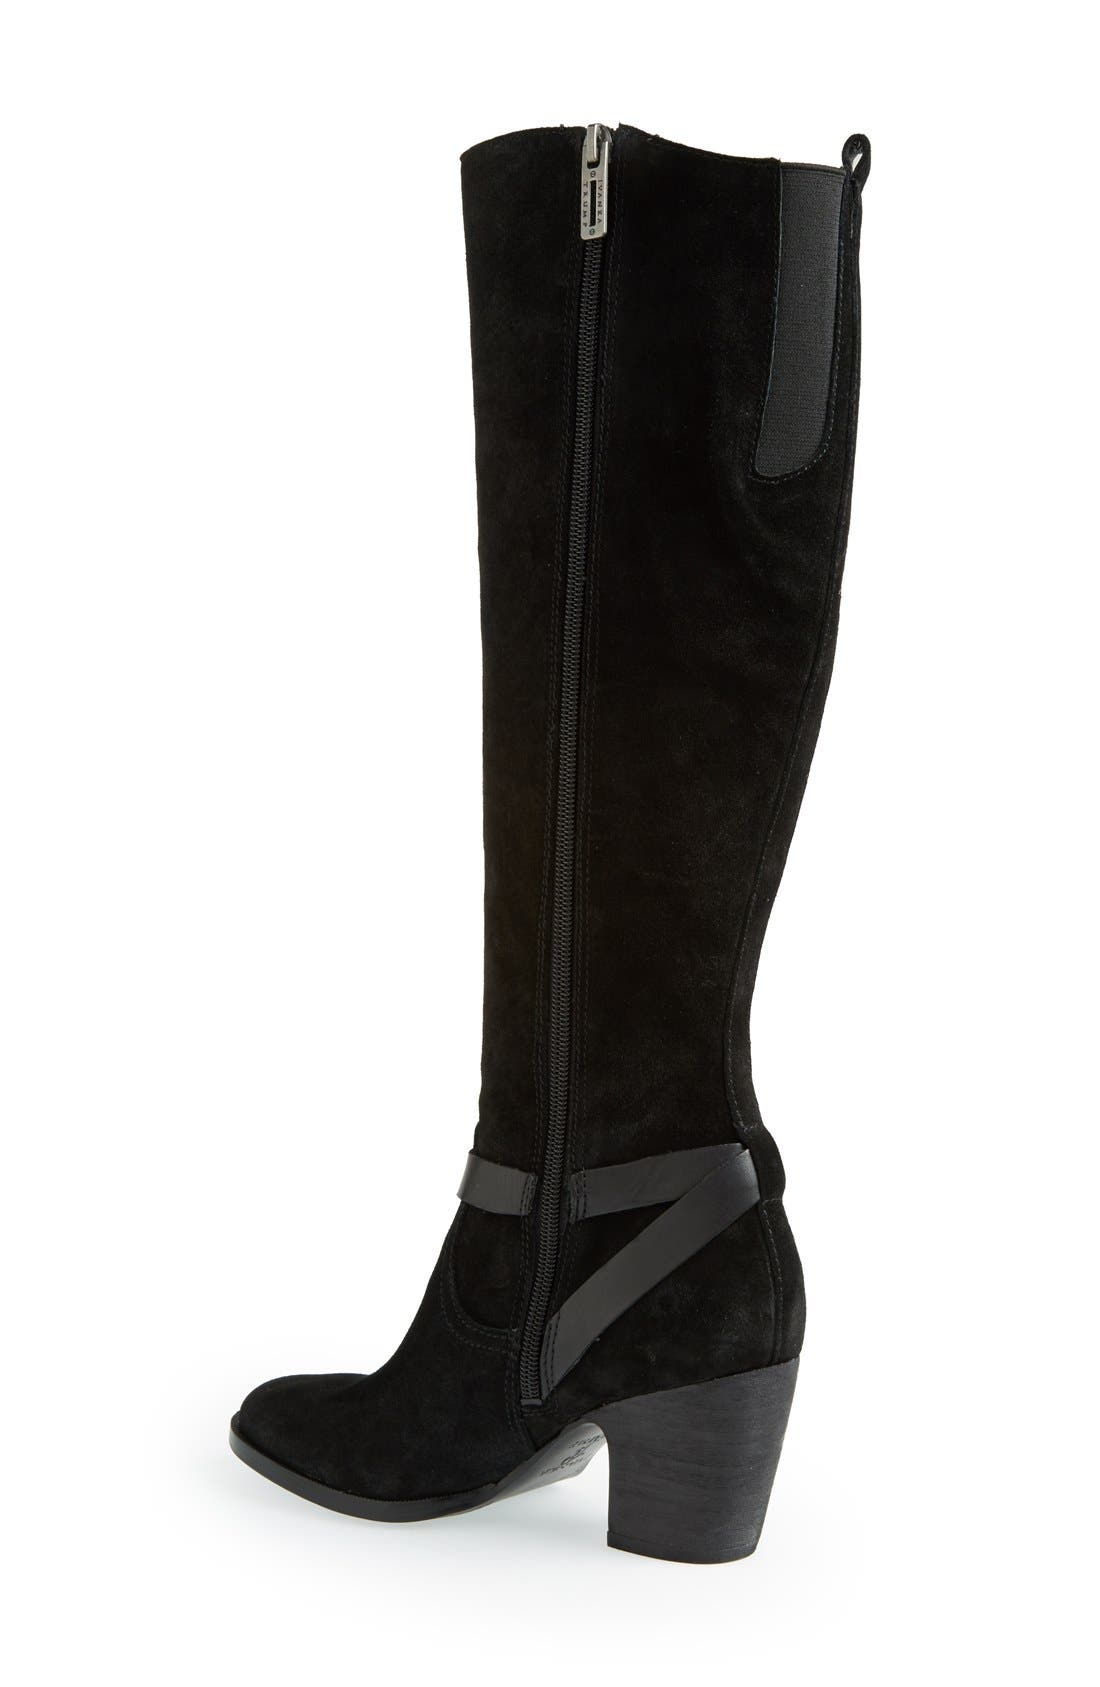 Alternate Image 3  - Ivanka Trump 'Tarrilyn' Knee High Suede Boot (Women)